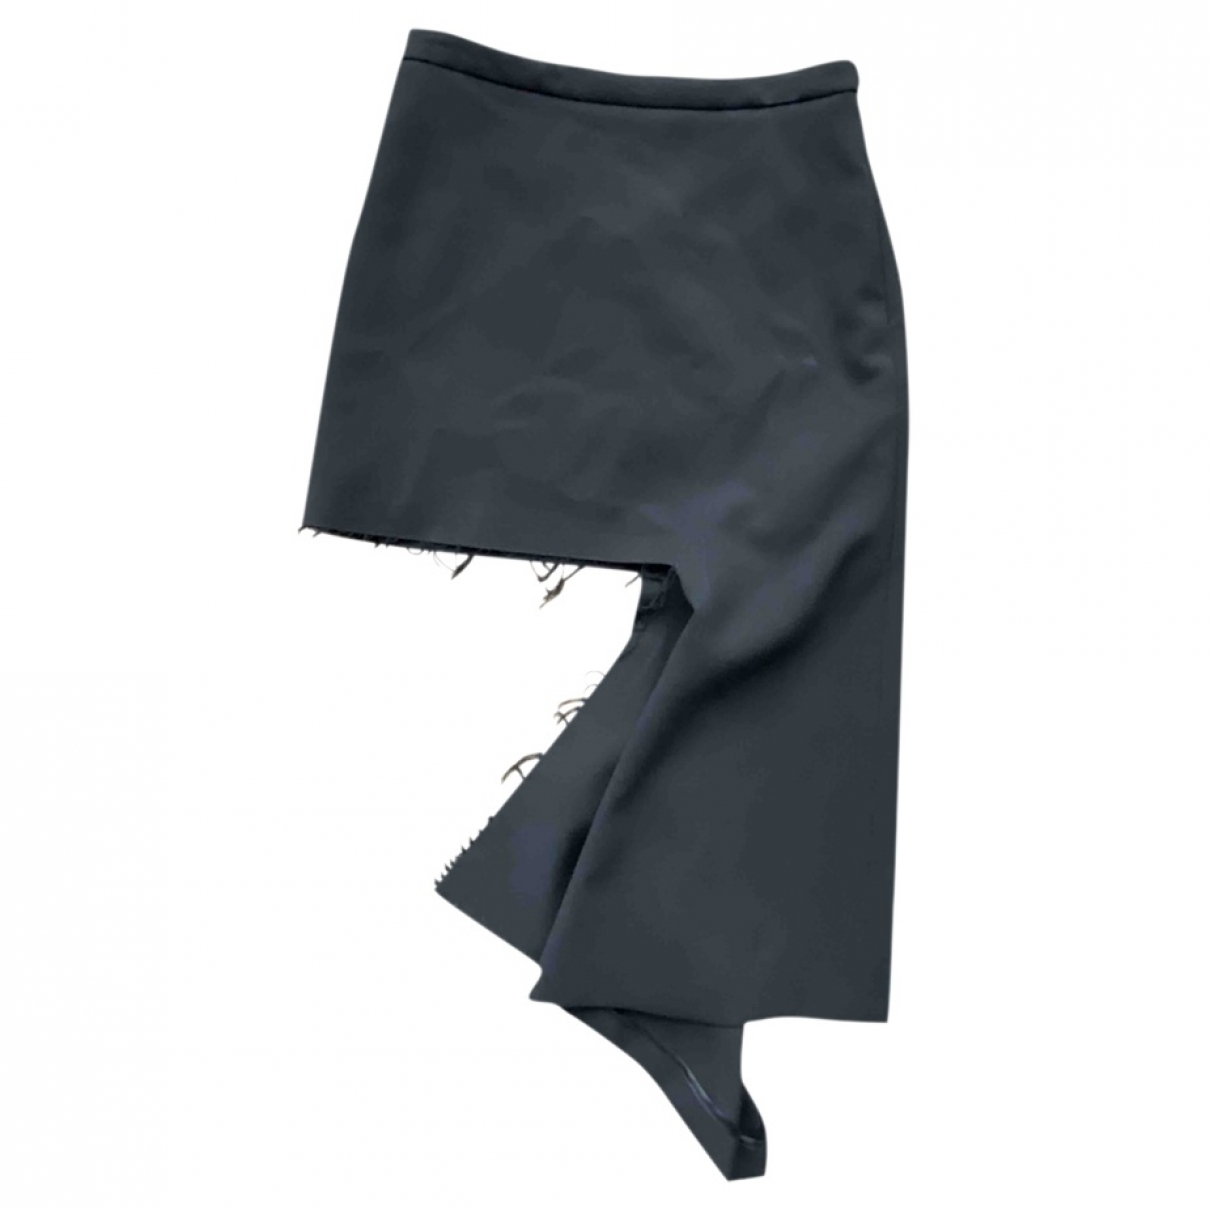 Balenciaga \N Black Wool skirt for Women 36 FR